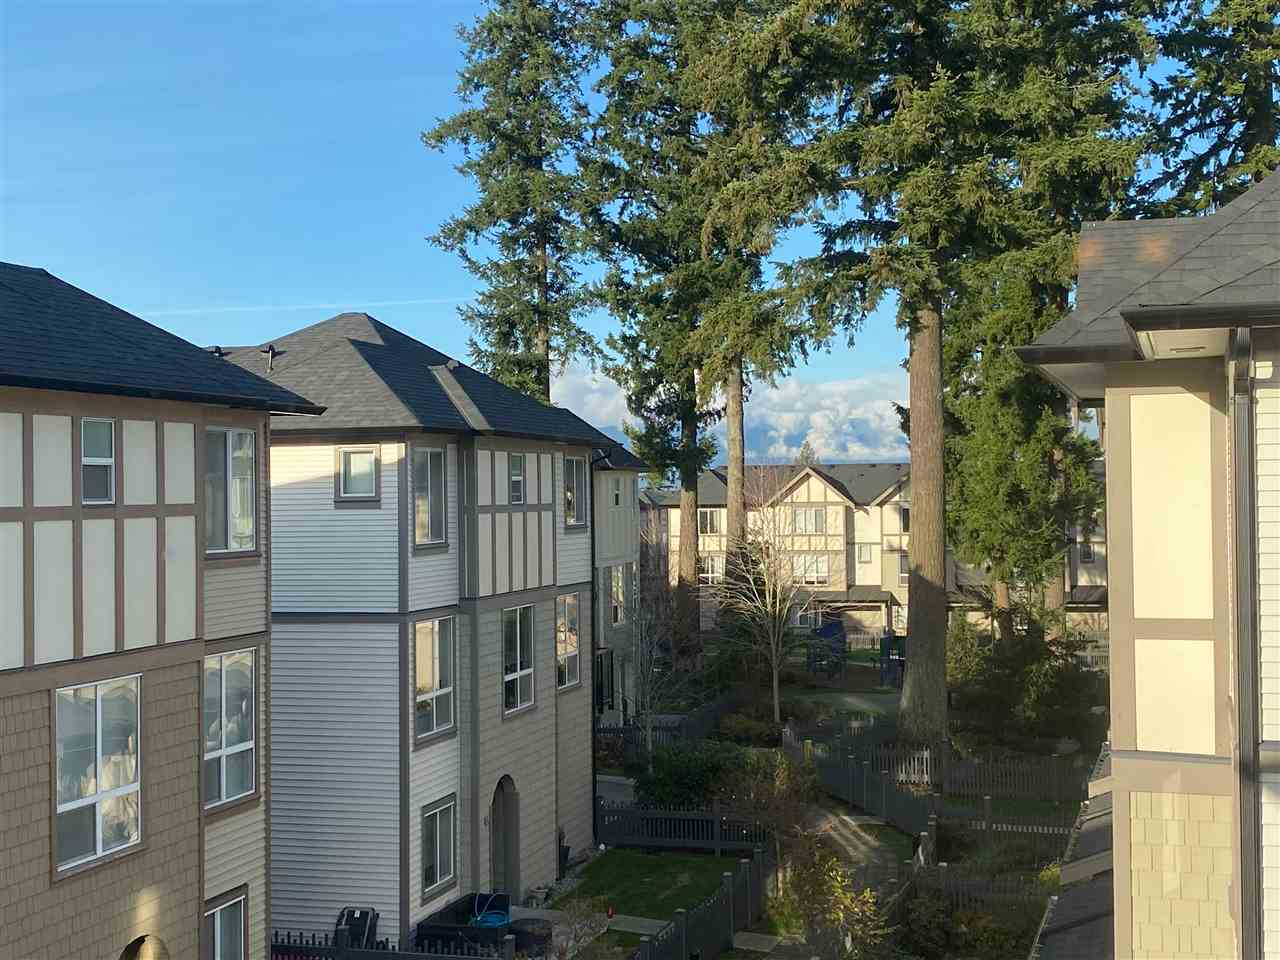 27 7848 209 STREET - Willoughby Heights Townhouse for sale, 2 Bedrooms (R2528348) - #8